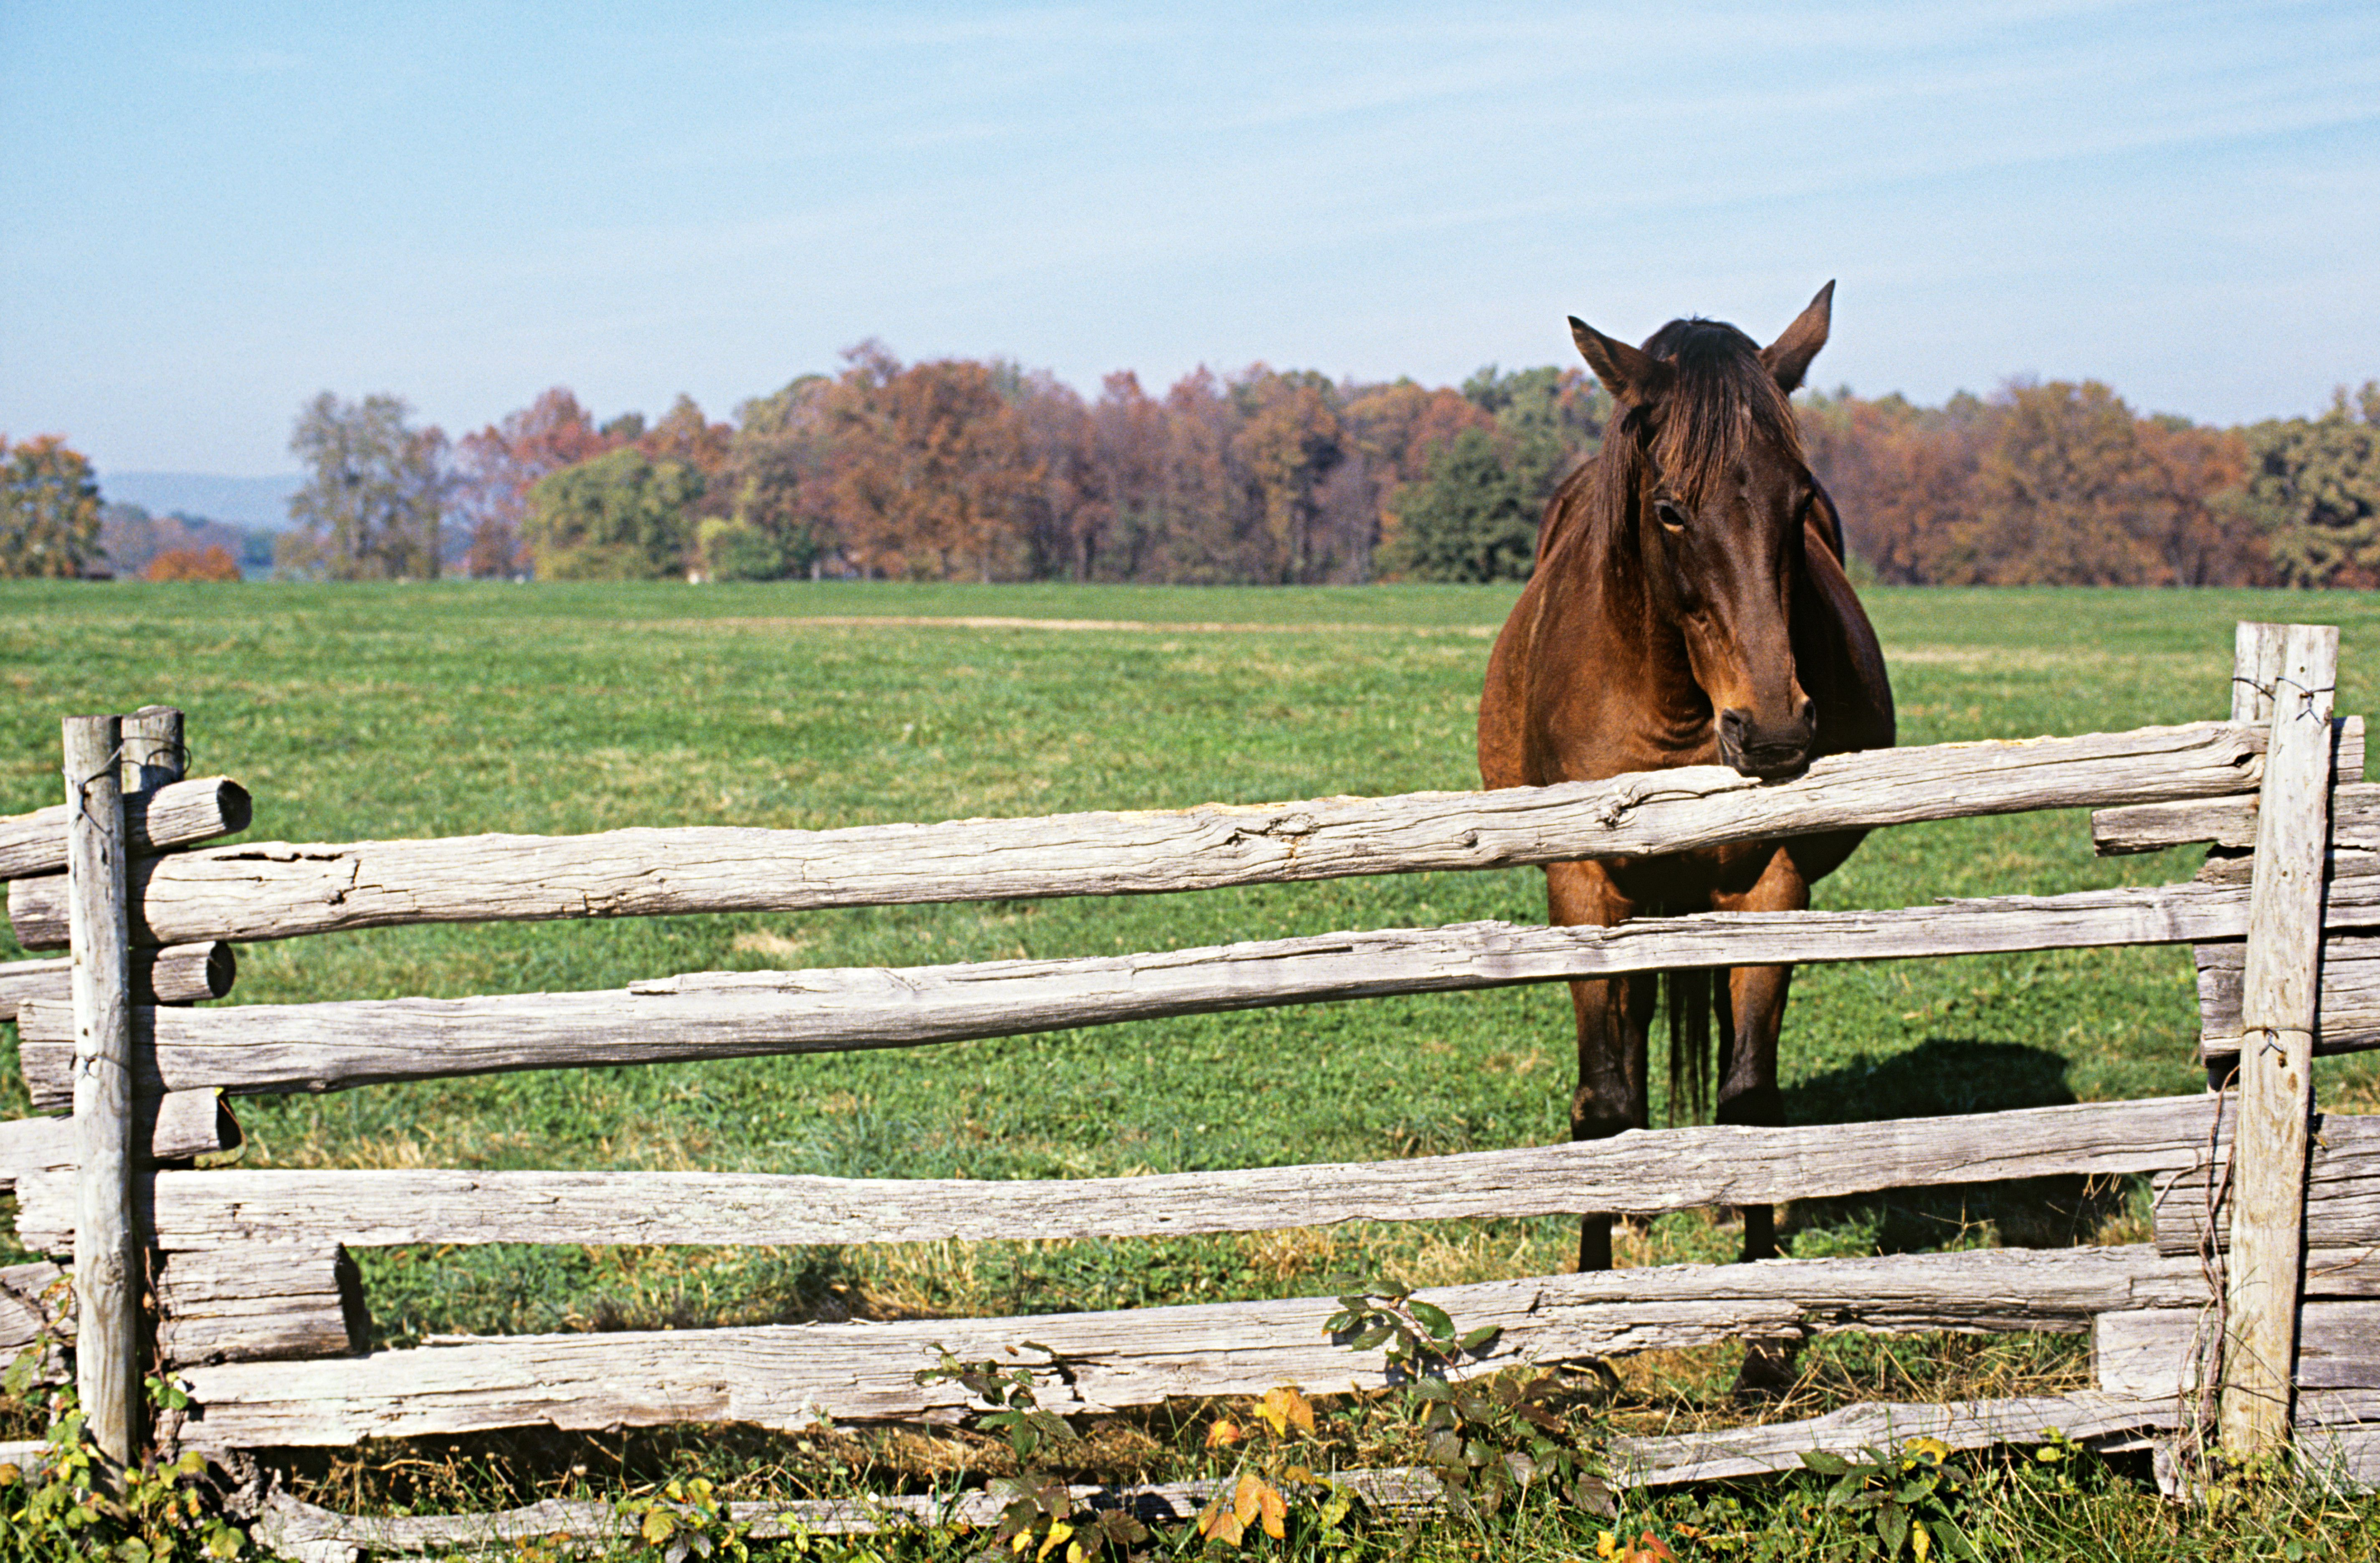 A horse standing near a fence